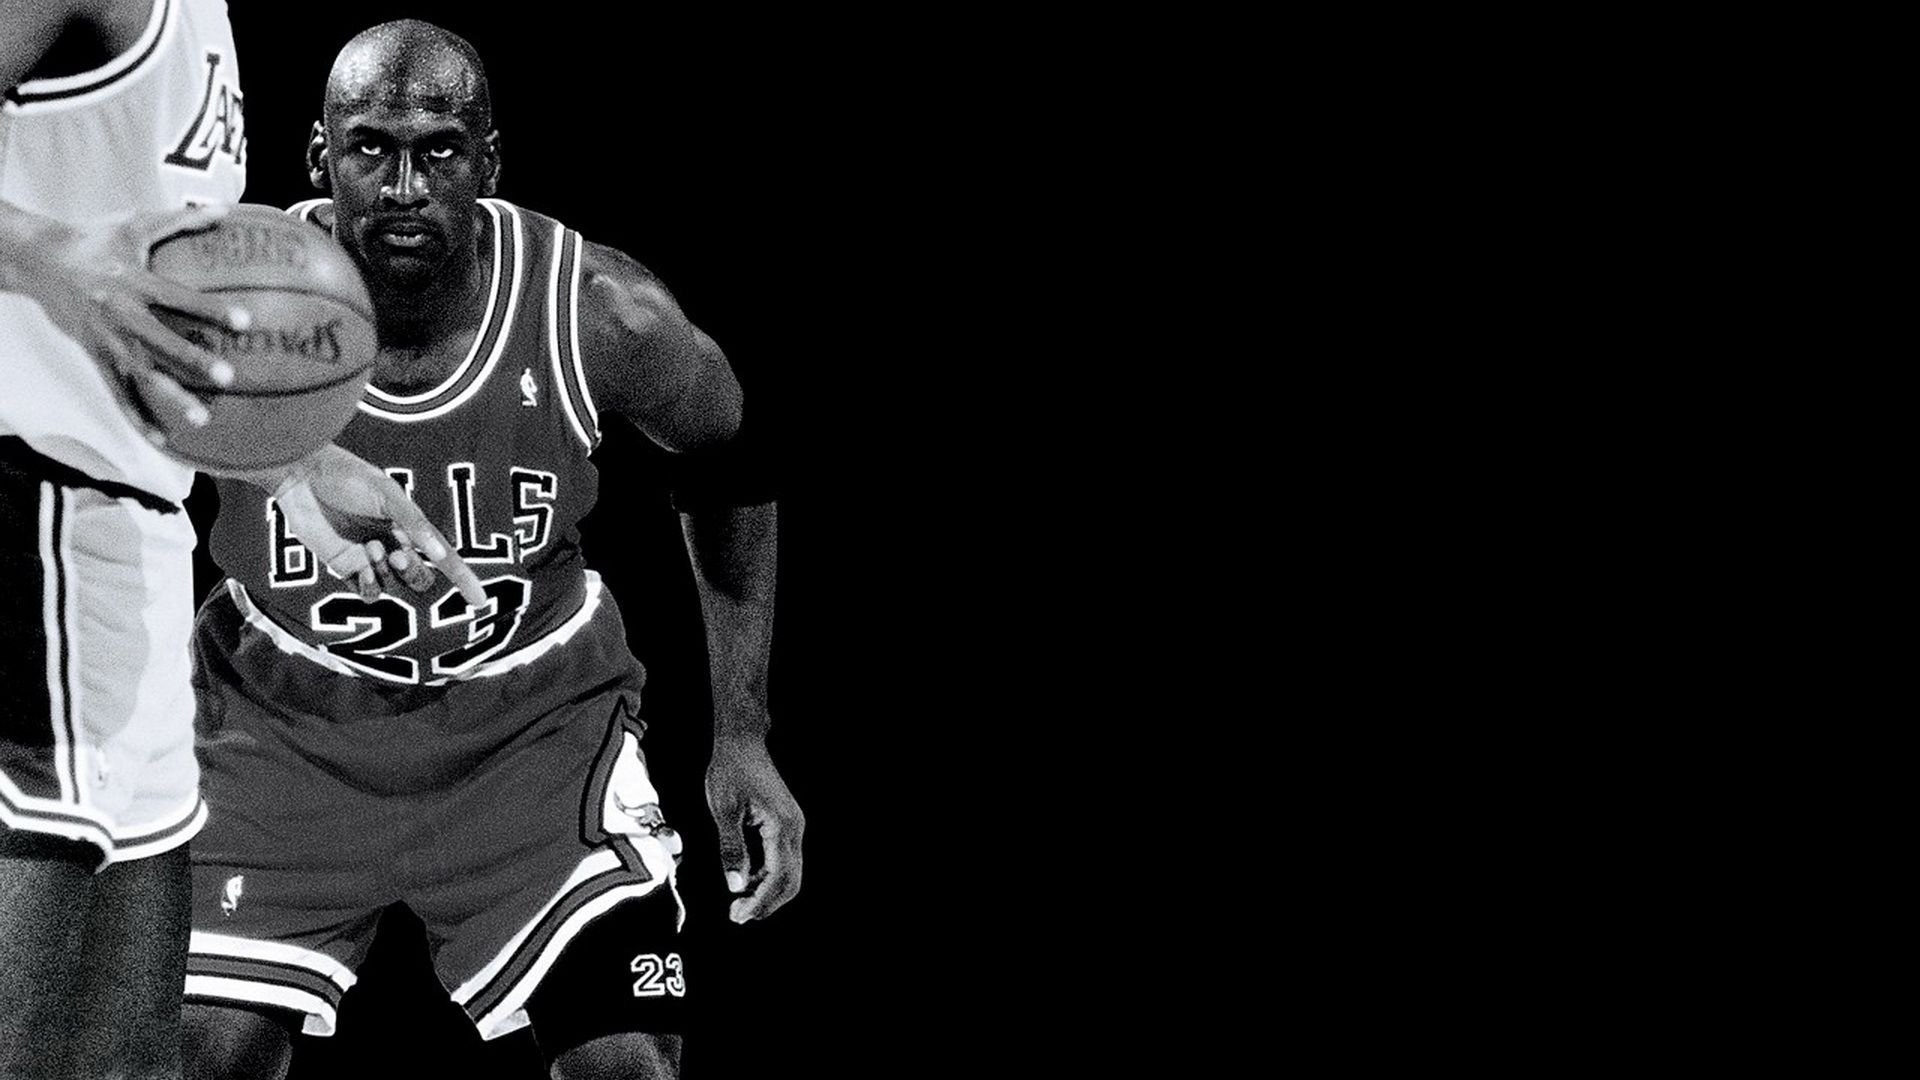 Jordan 4k Wallpapers Top Free Jordan 4k Backgrounds Wallpaperaccess